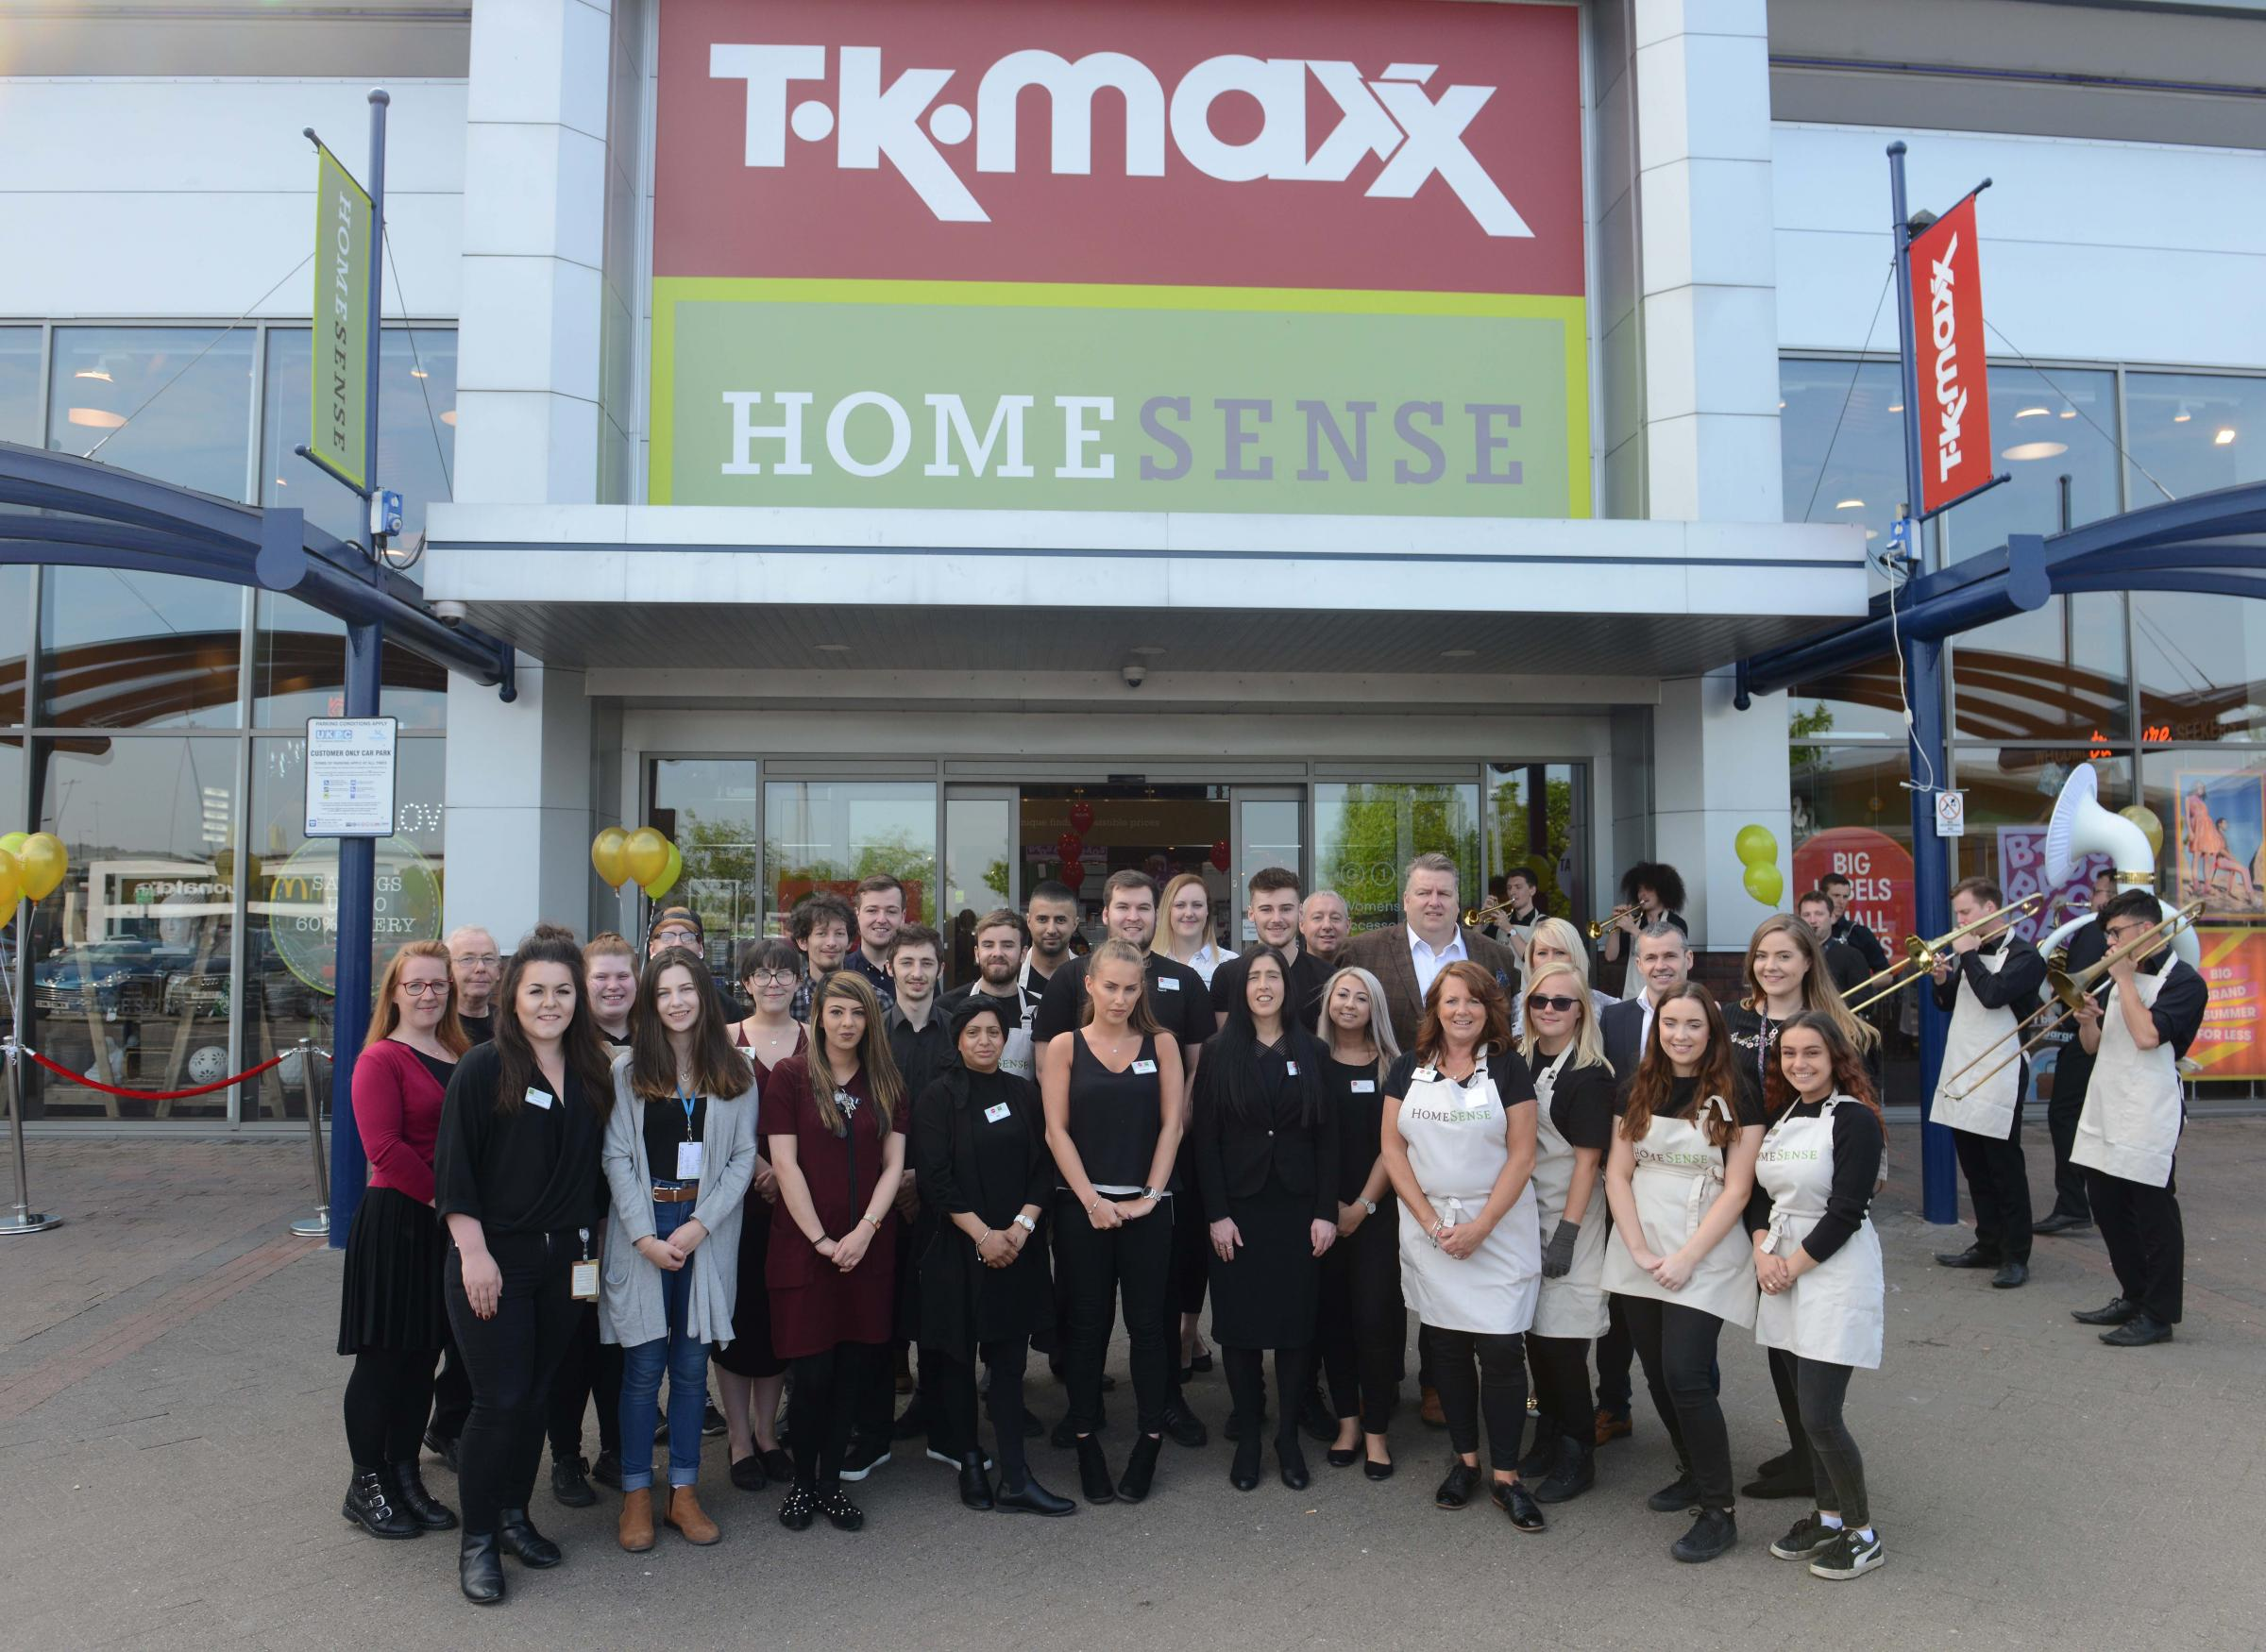 A new Homesense store in Middlebrook, Bolton, Lancs., has opened this morning within the existing TK Maxx store. 24 May 2018..